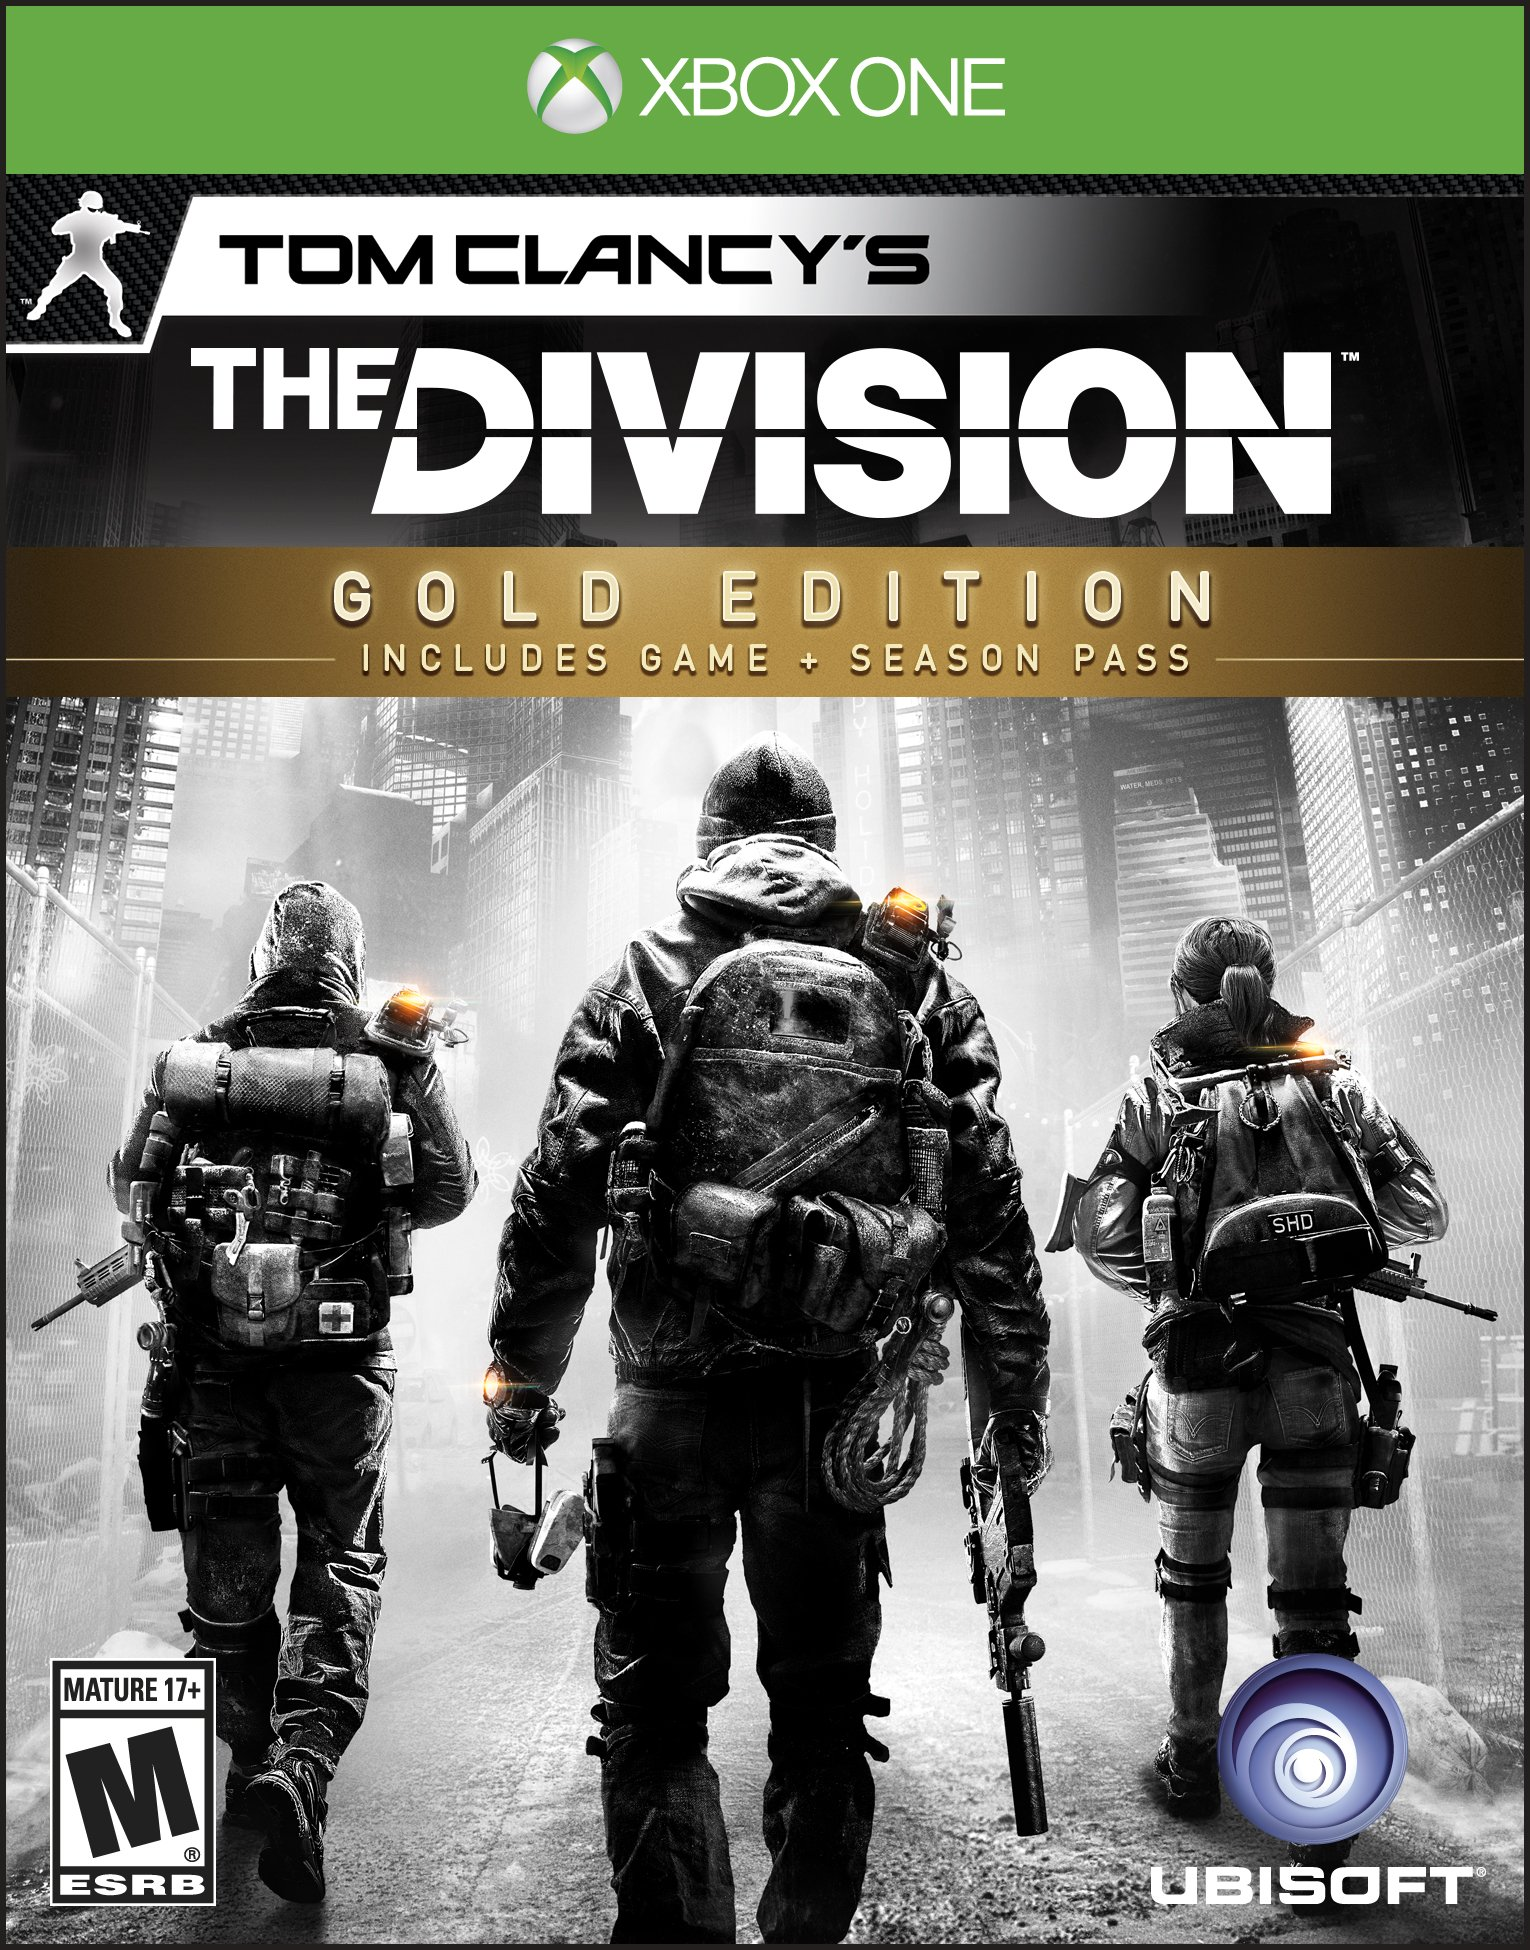 Tom clancy division release date in Australia